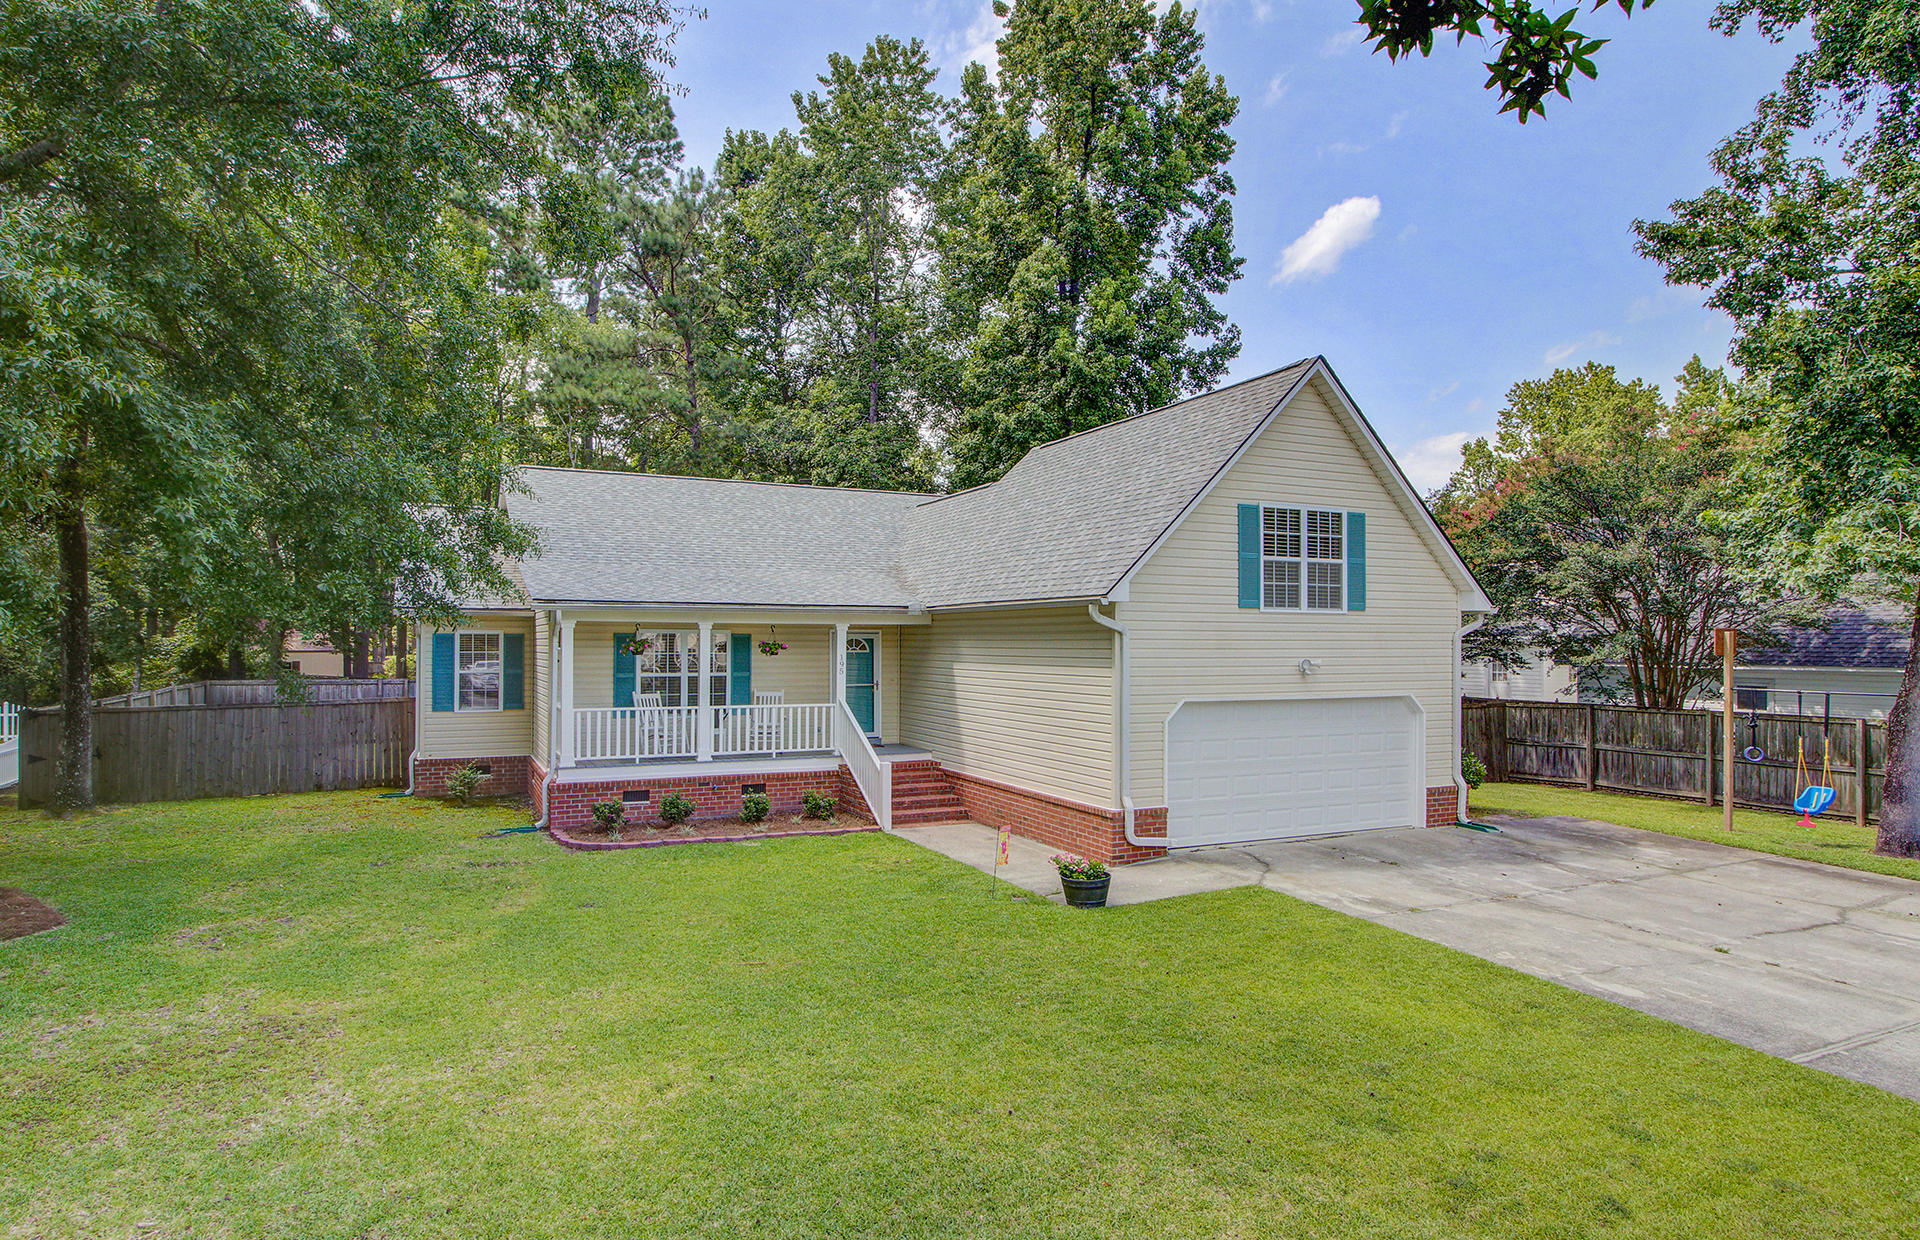 195 Edinburgh Street Summerville, Sc 29483